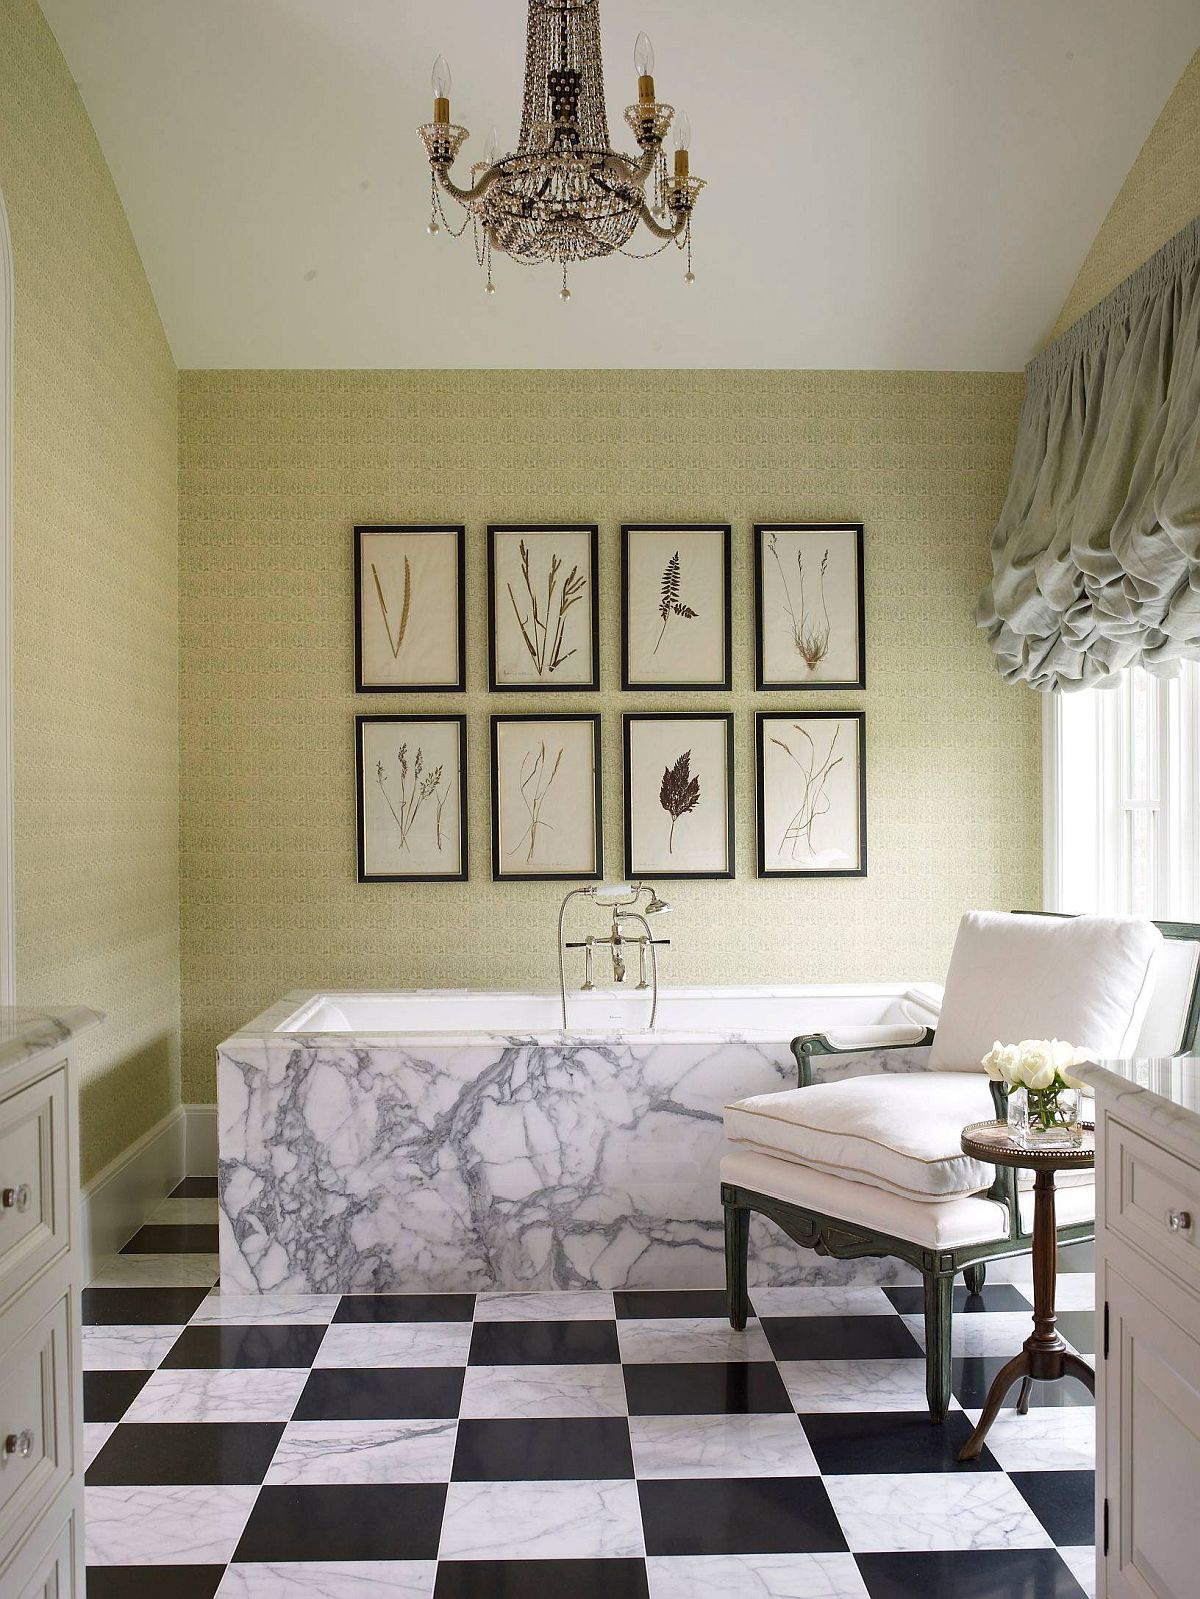 Green-and-white-bathroom-with-black-and-white-tiles-and-framed-botanical-prints-on-the-accent-wall-64799